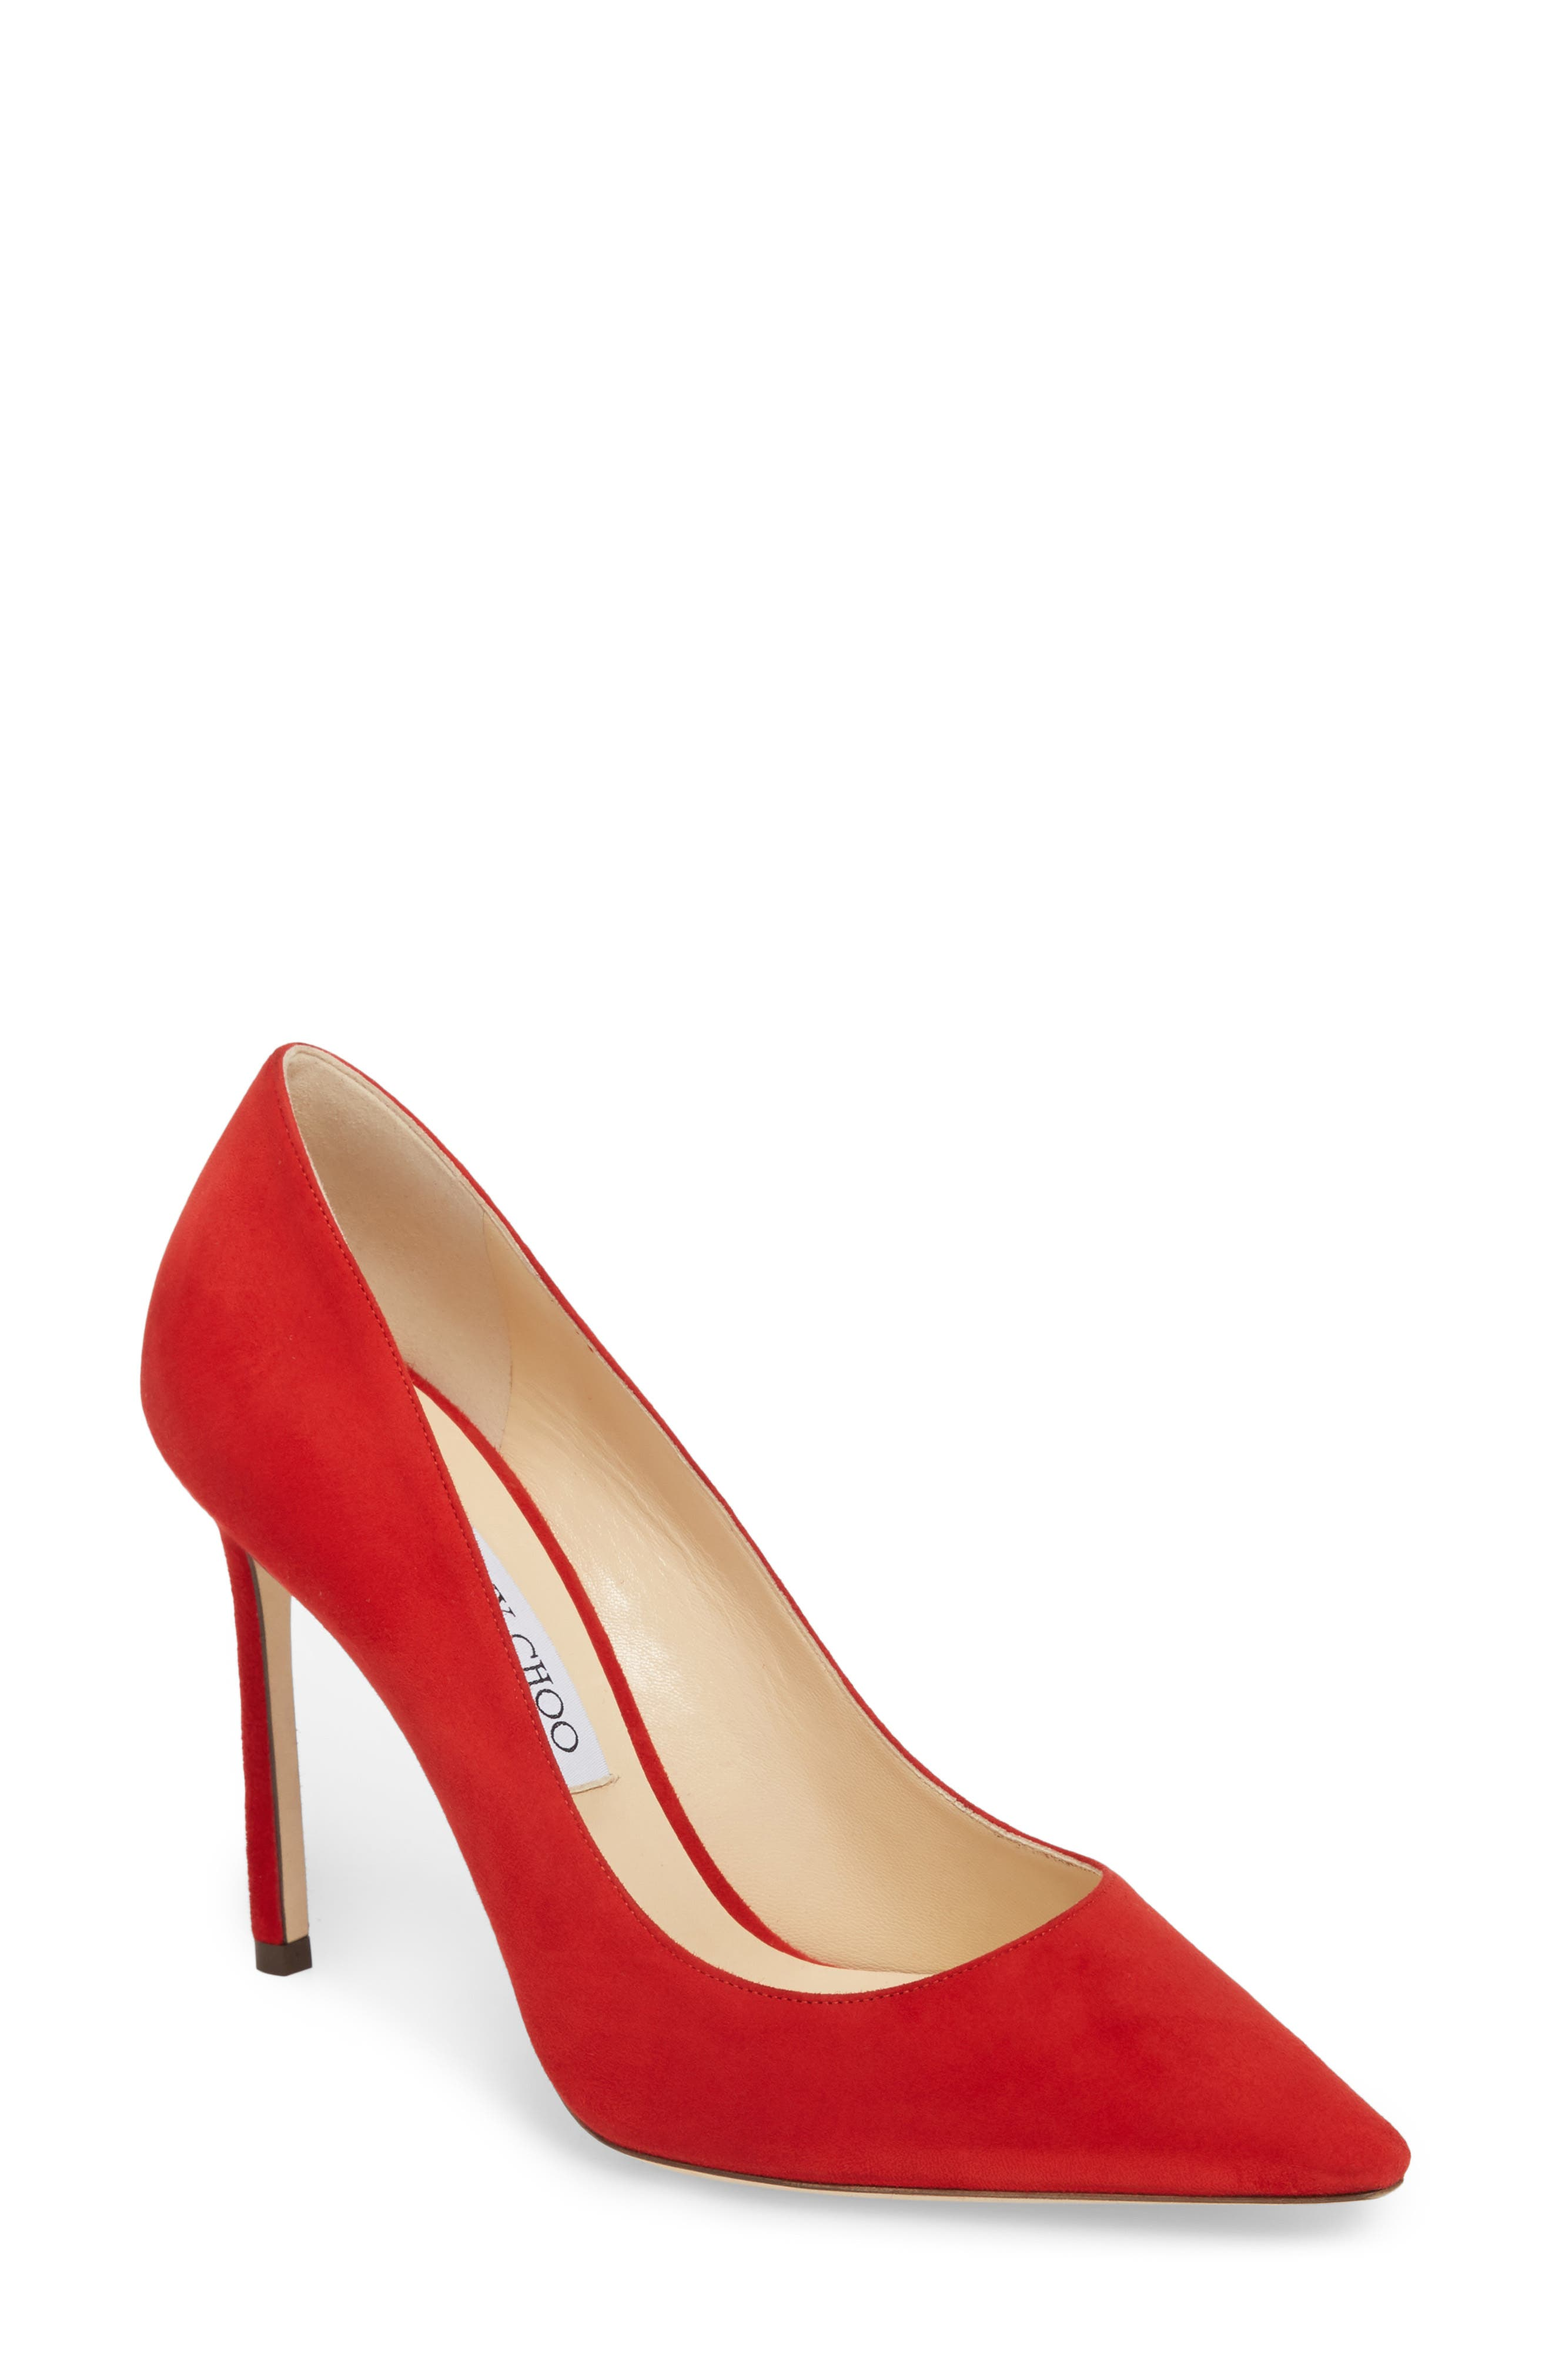 'Romy' Pointy Toe Pump,                         Main,                         color, Red Suede